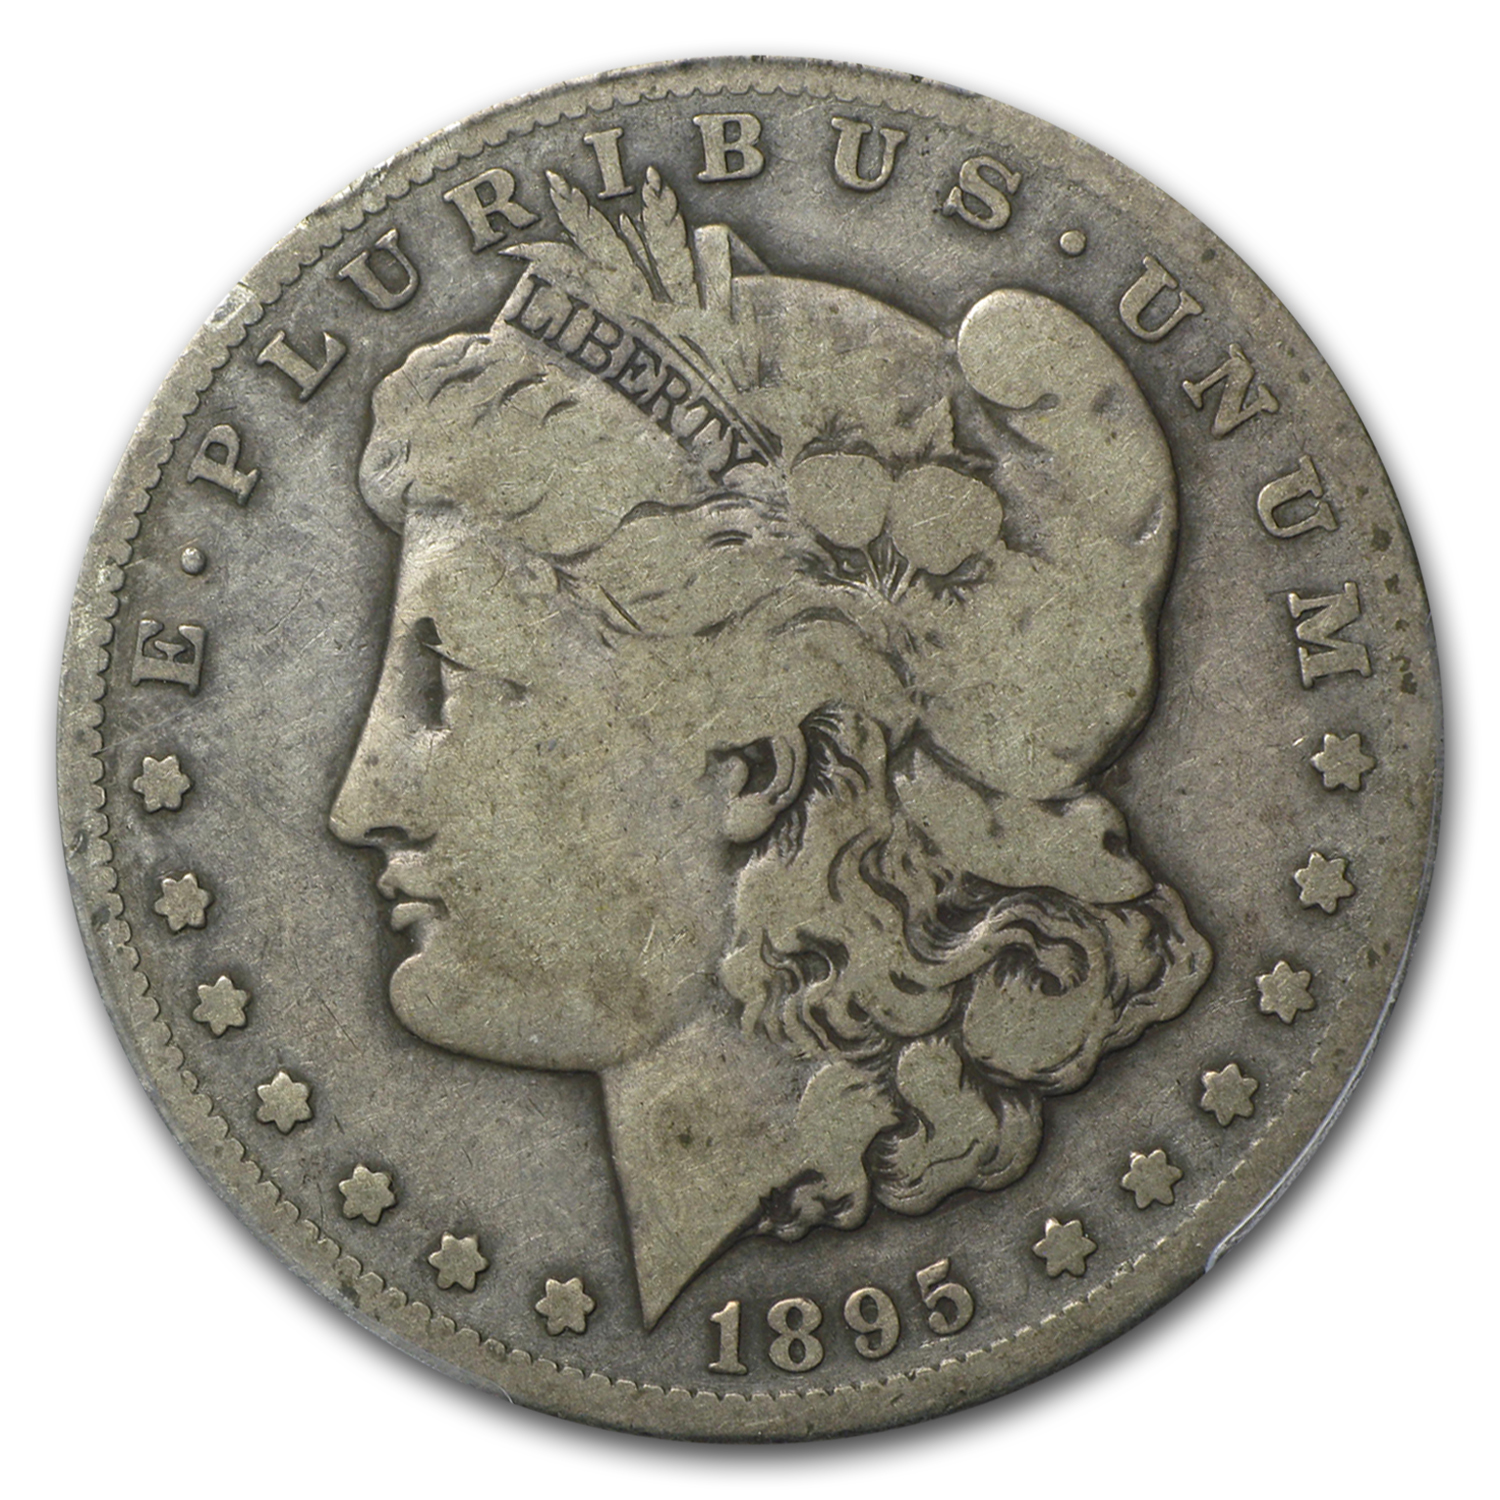 1895-S Morgan Dollar VG-8 PCGS